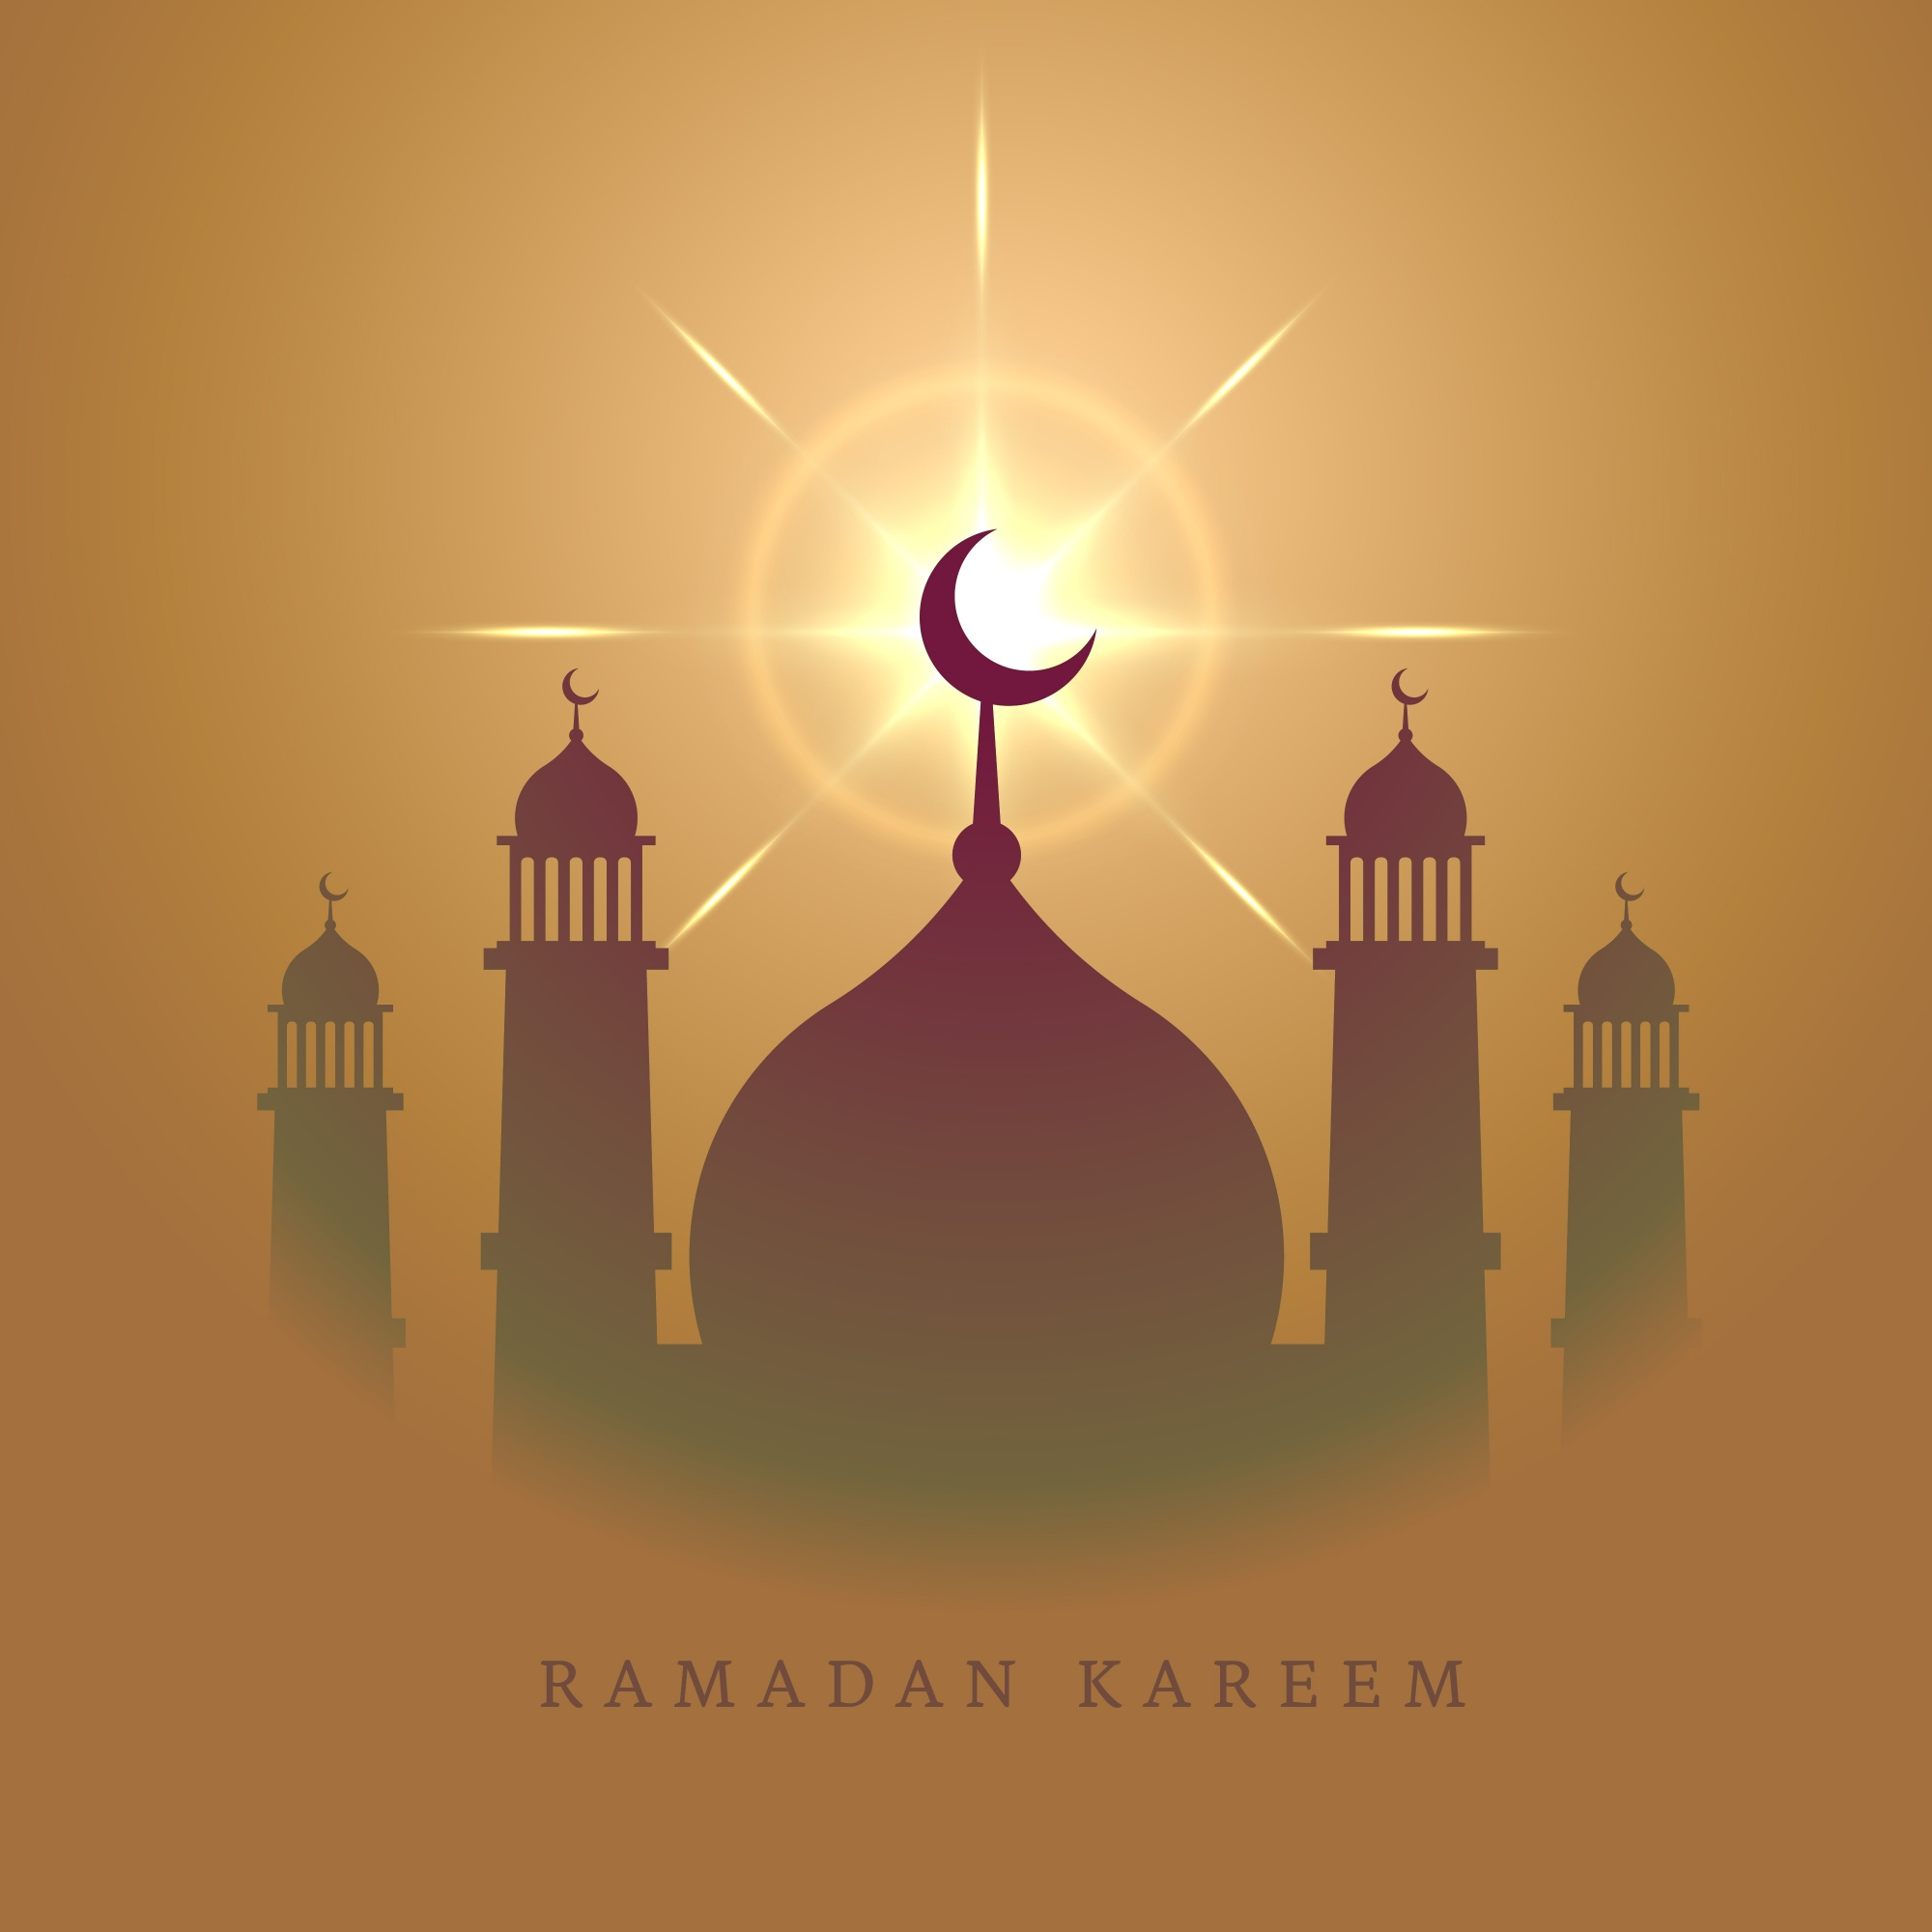 Ramadan kareem card with mosque